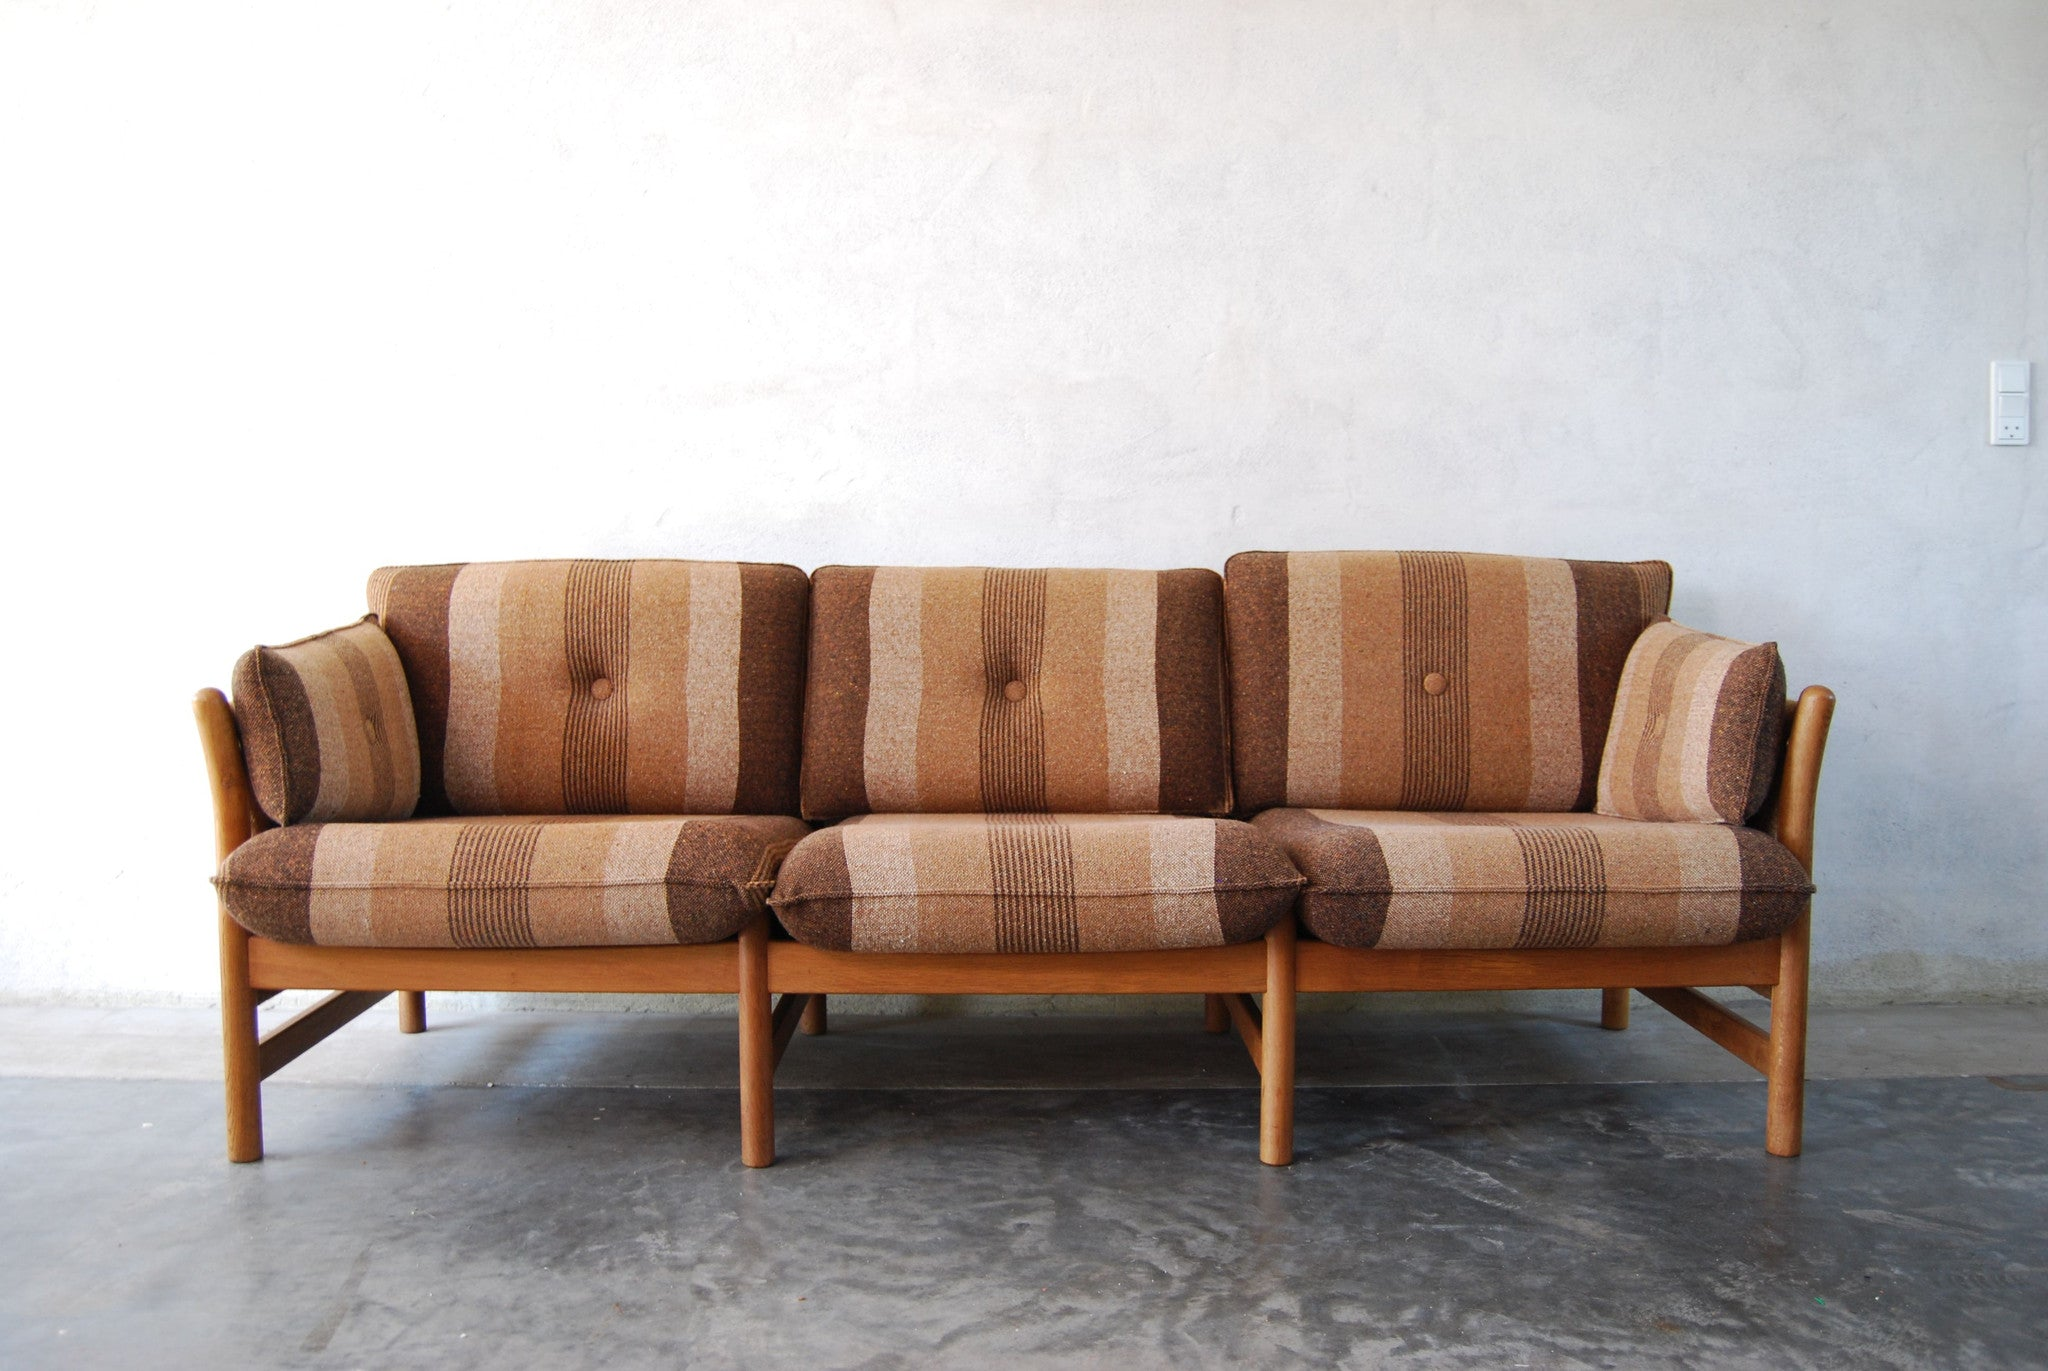 Three seat oak framed sofa